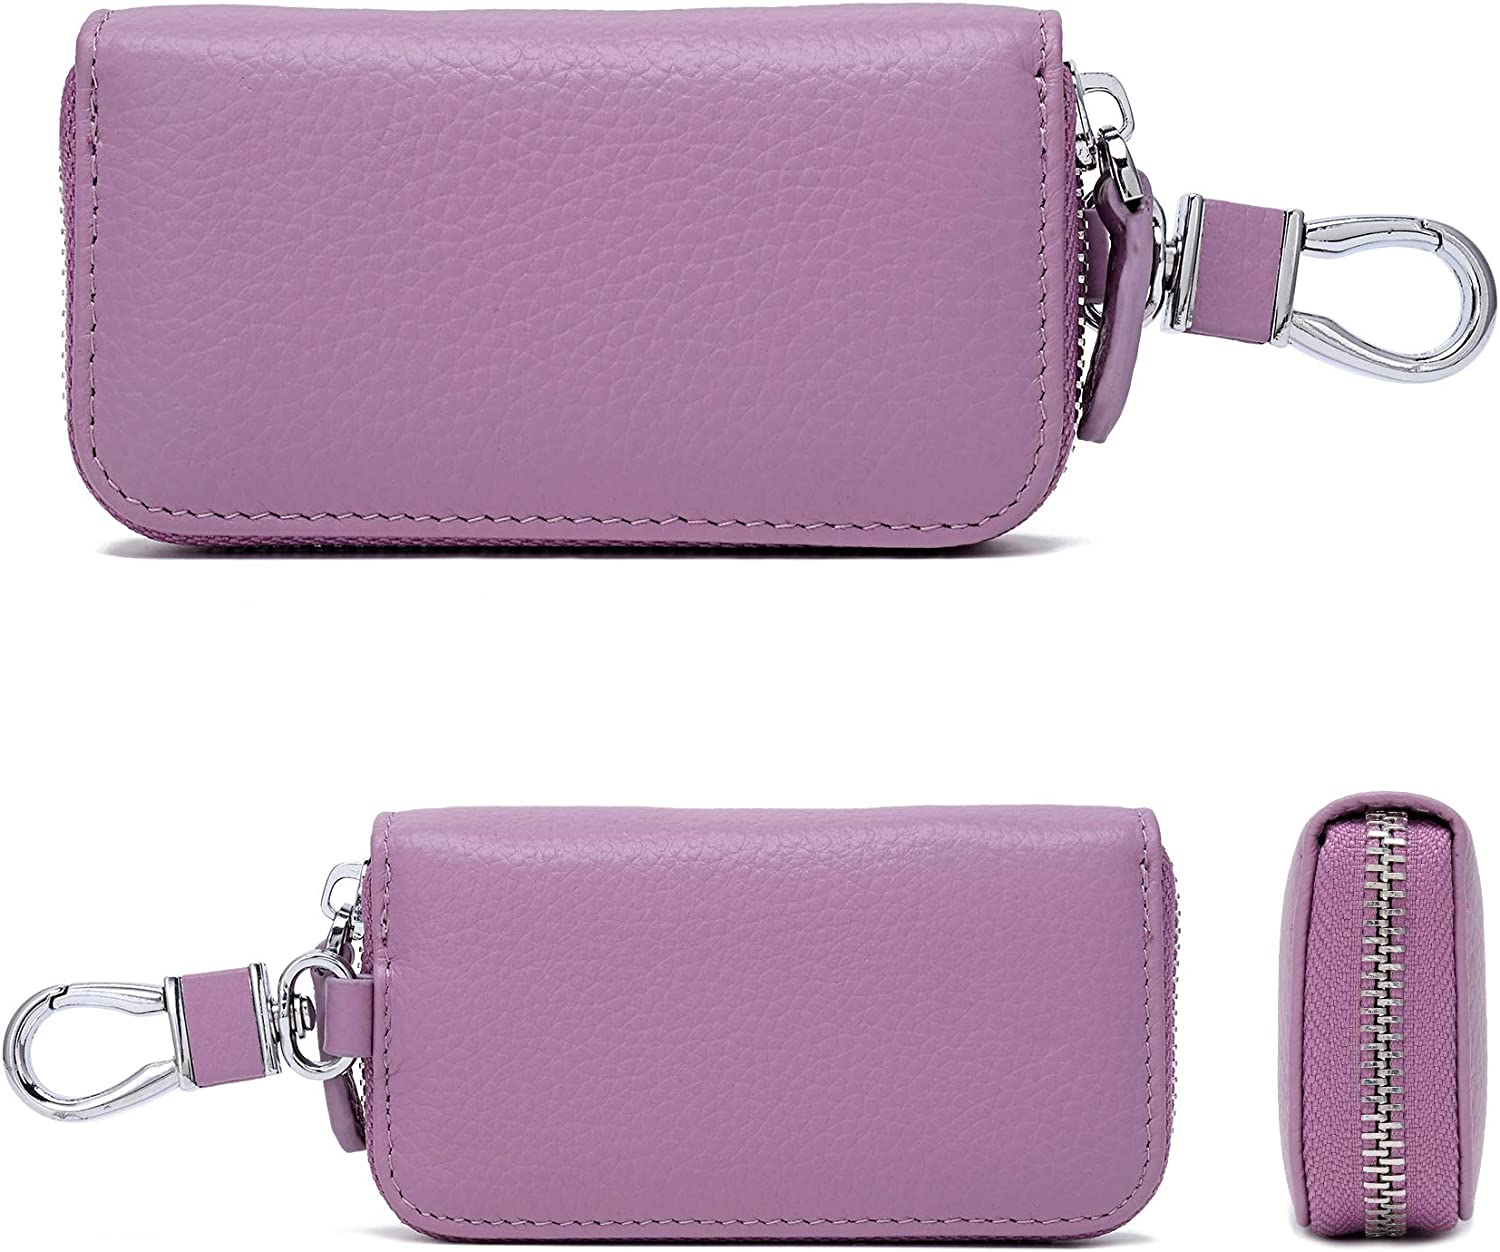 NEW Ladies Leather Matinee Purse Wallet by Prime Hide in 6 Colours Quality Gift